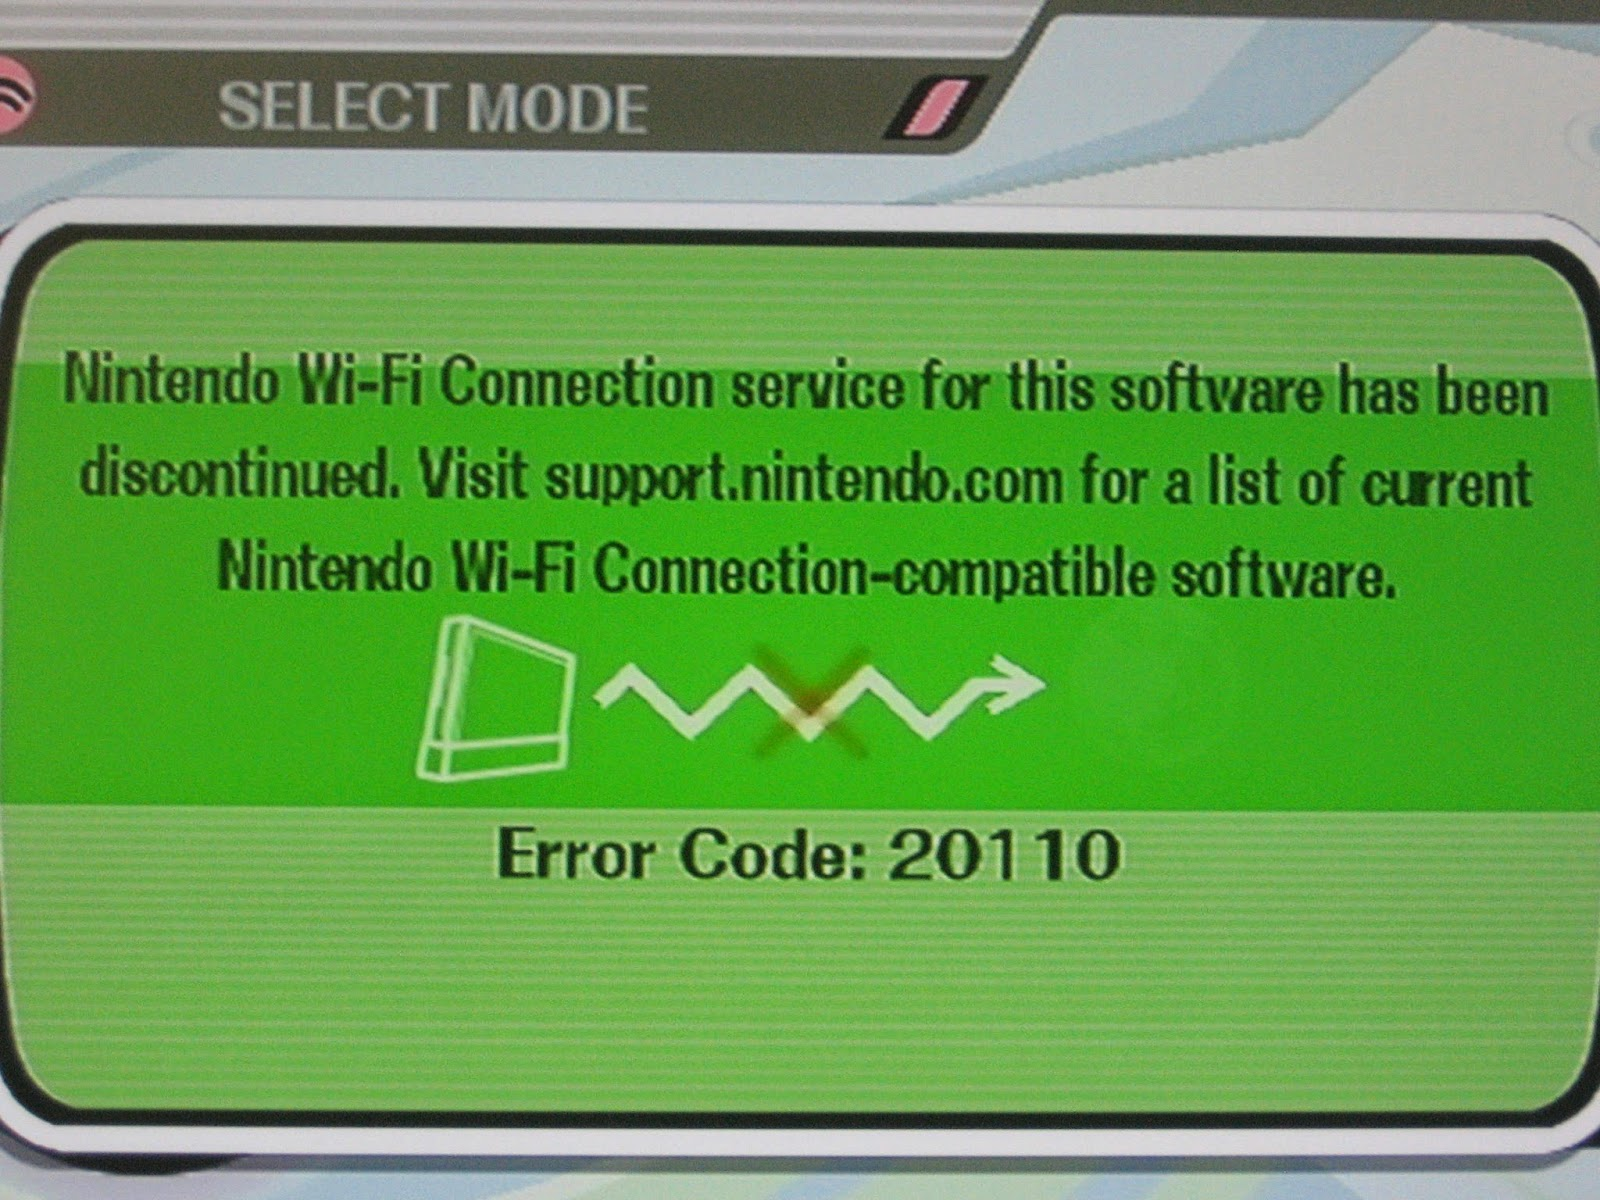 Nintendo Wi-Fi Connection error code 20110 Super Smash Bros. Ultimate